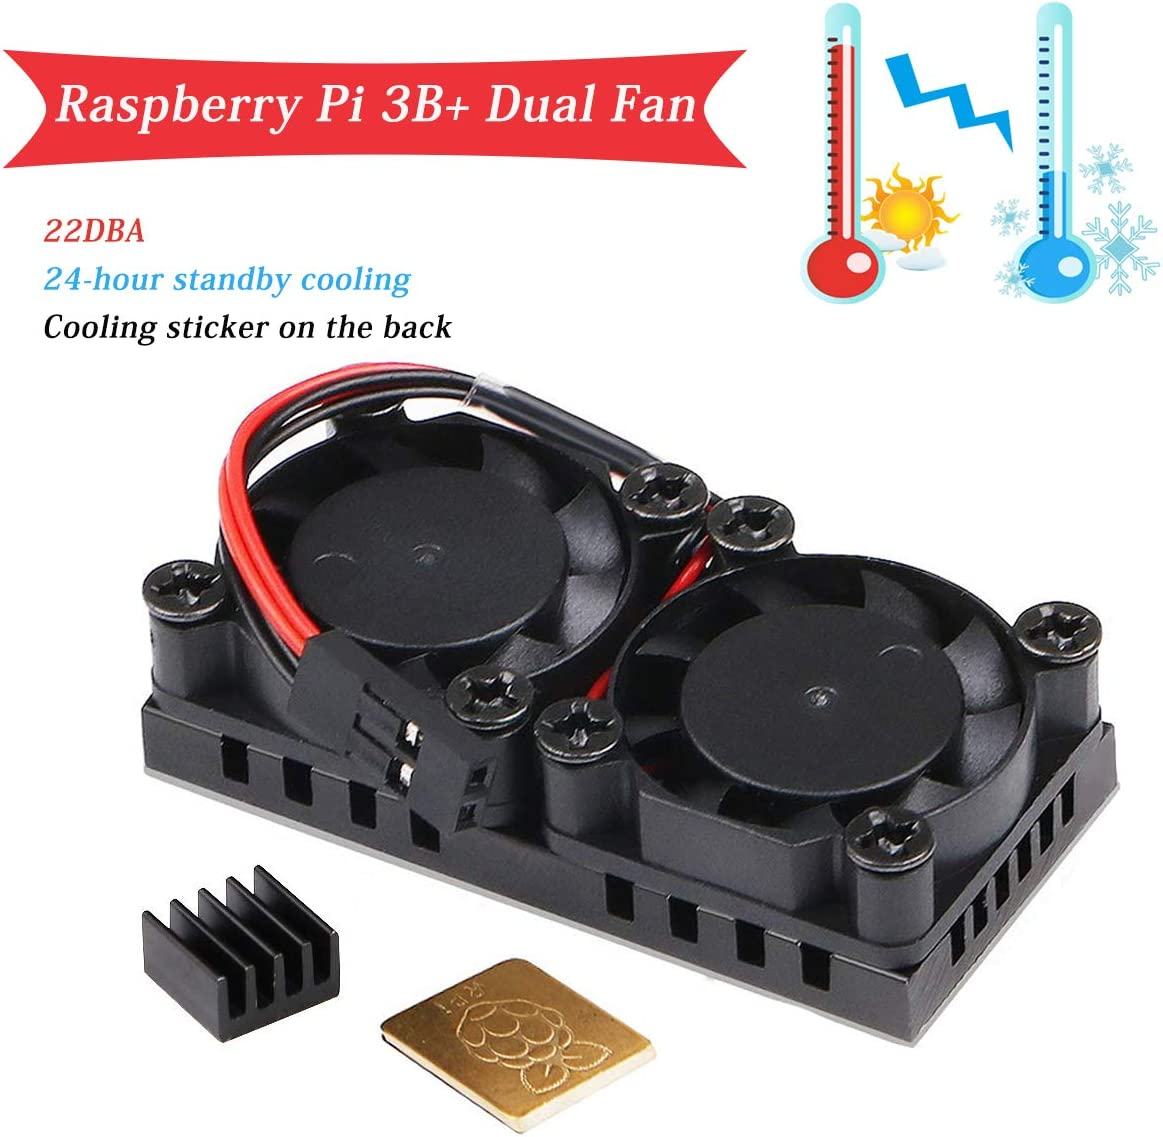 MakerFocus Raspberry Pi 3 B+ Dual Fan, Raspberry Pi Cooling Fan with 2pcs Heatsink, for Raspberry Pi 3 B+, Ultimate Cooling and 22DBA Quiet Fan for RPI 3 B+